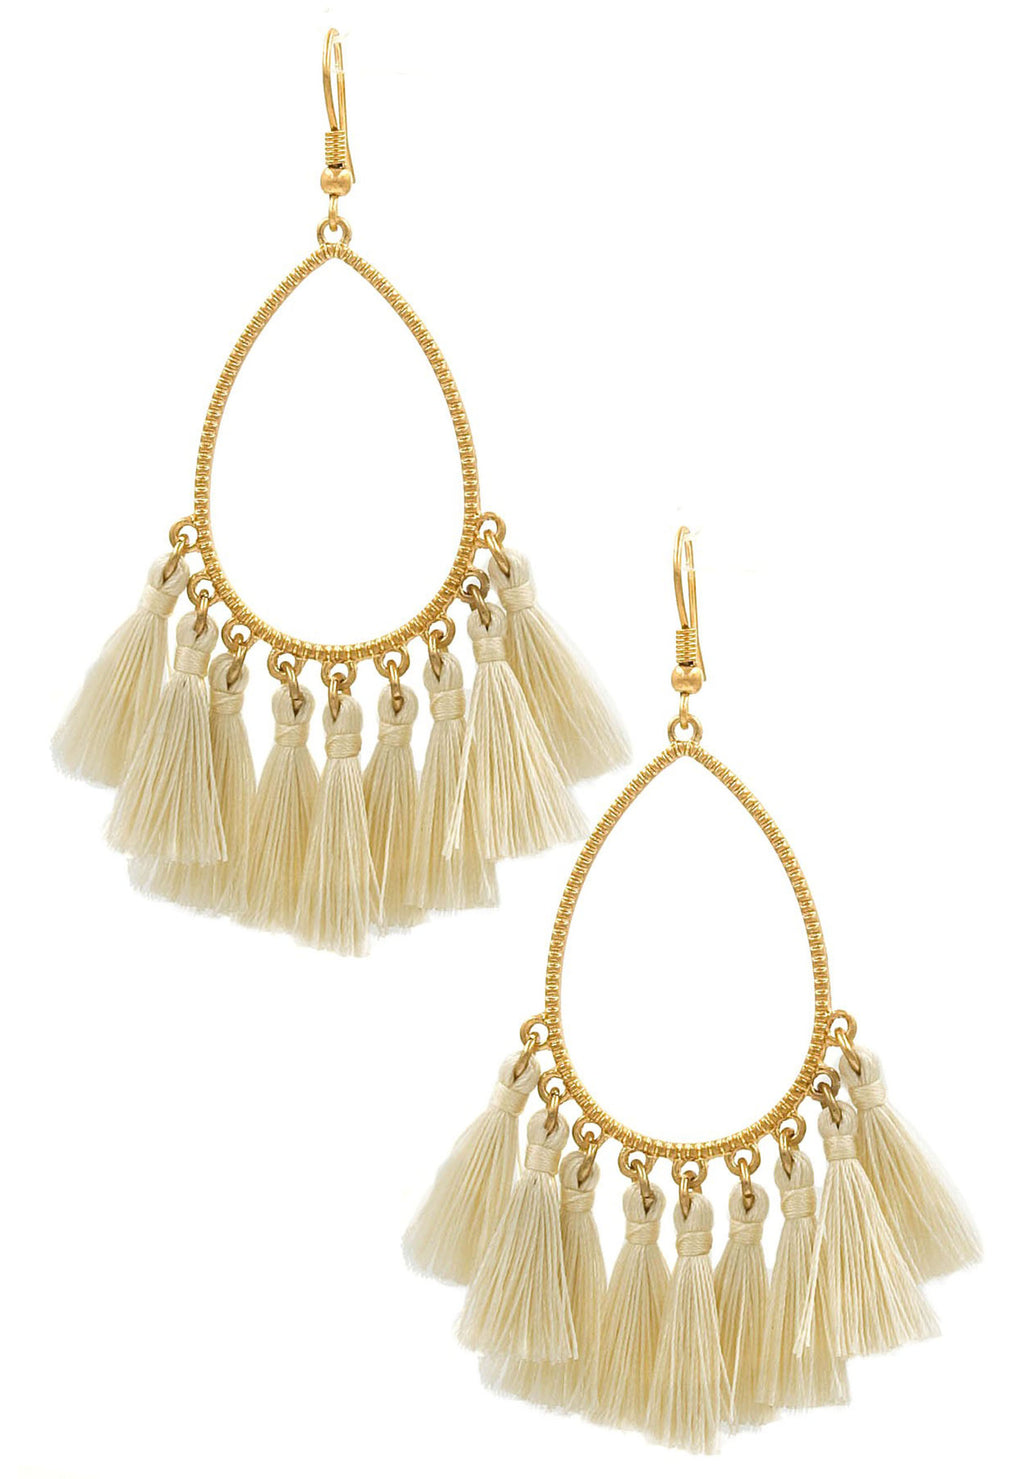 Tori Tassel Earrings - Natural